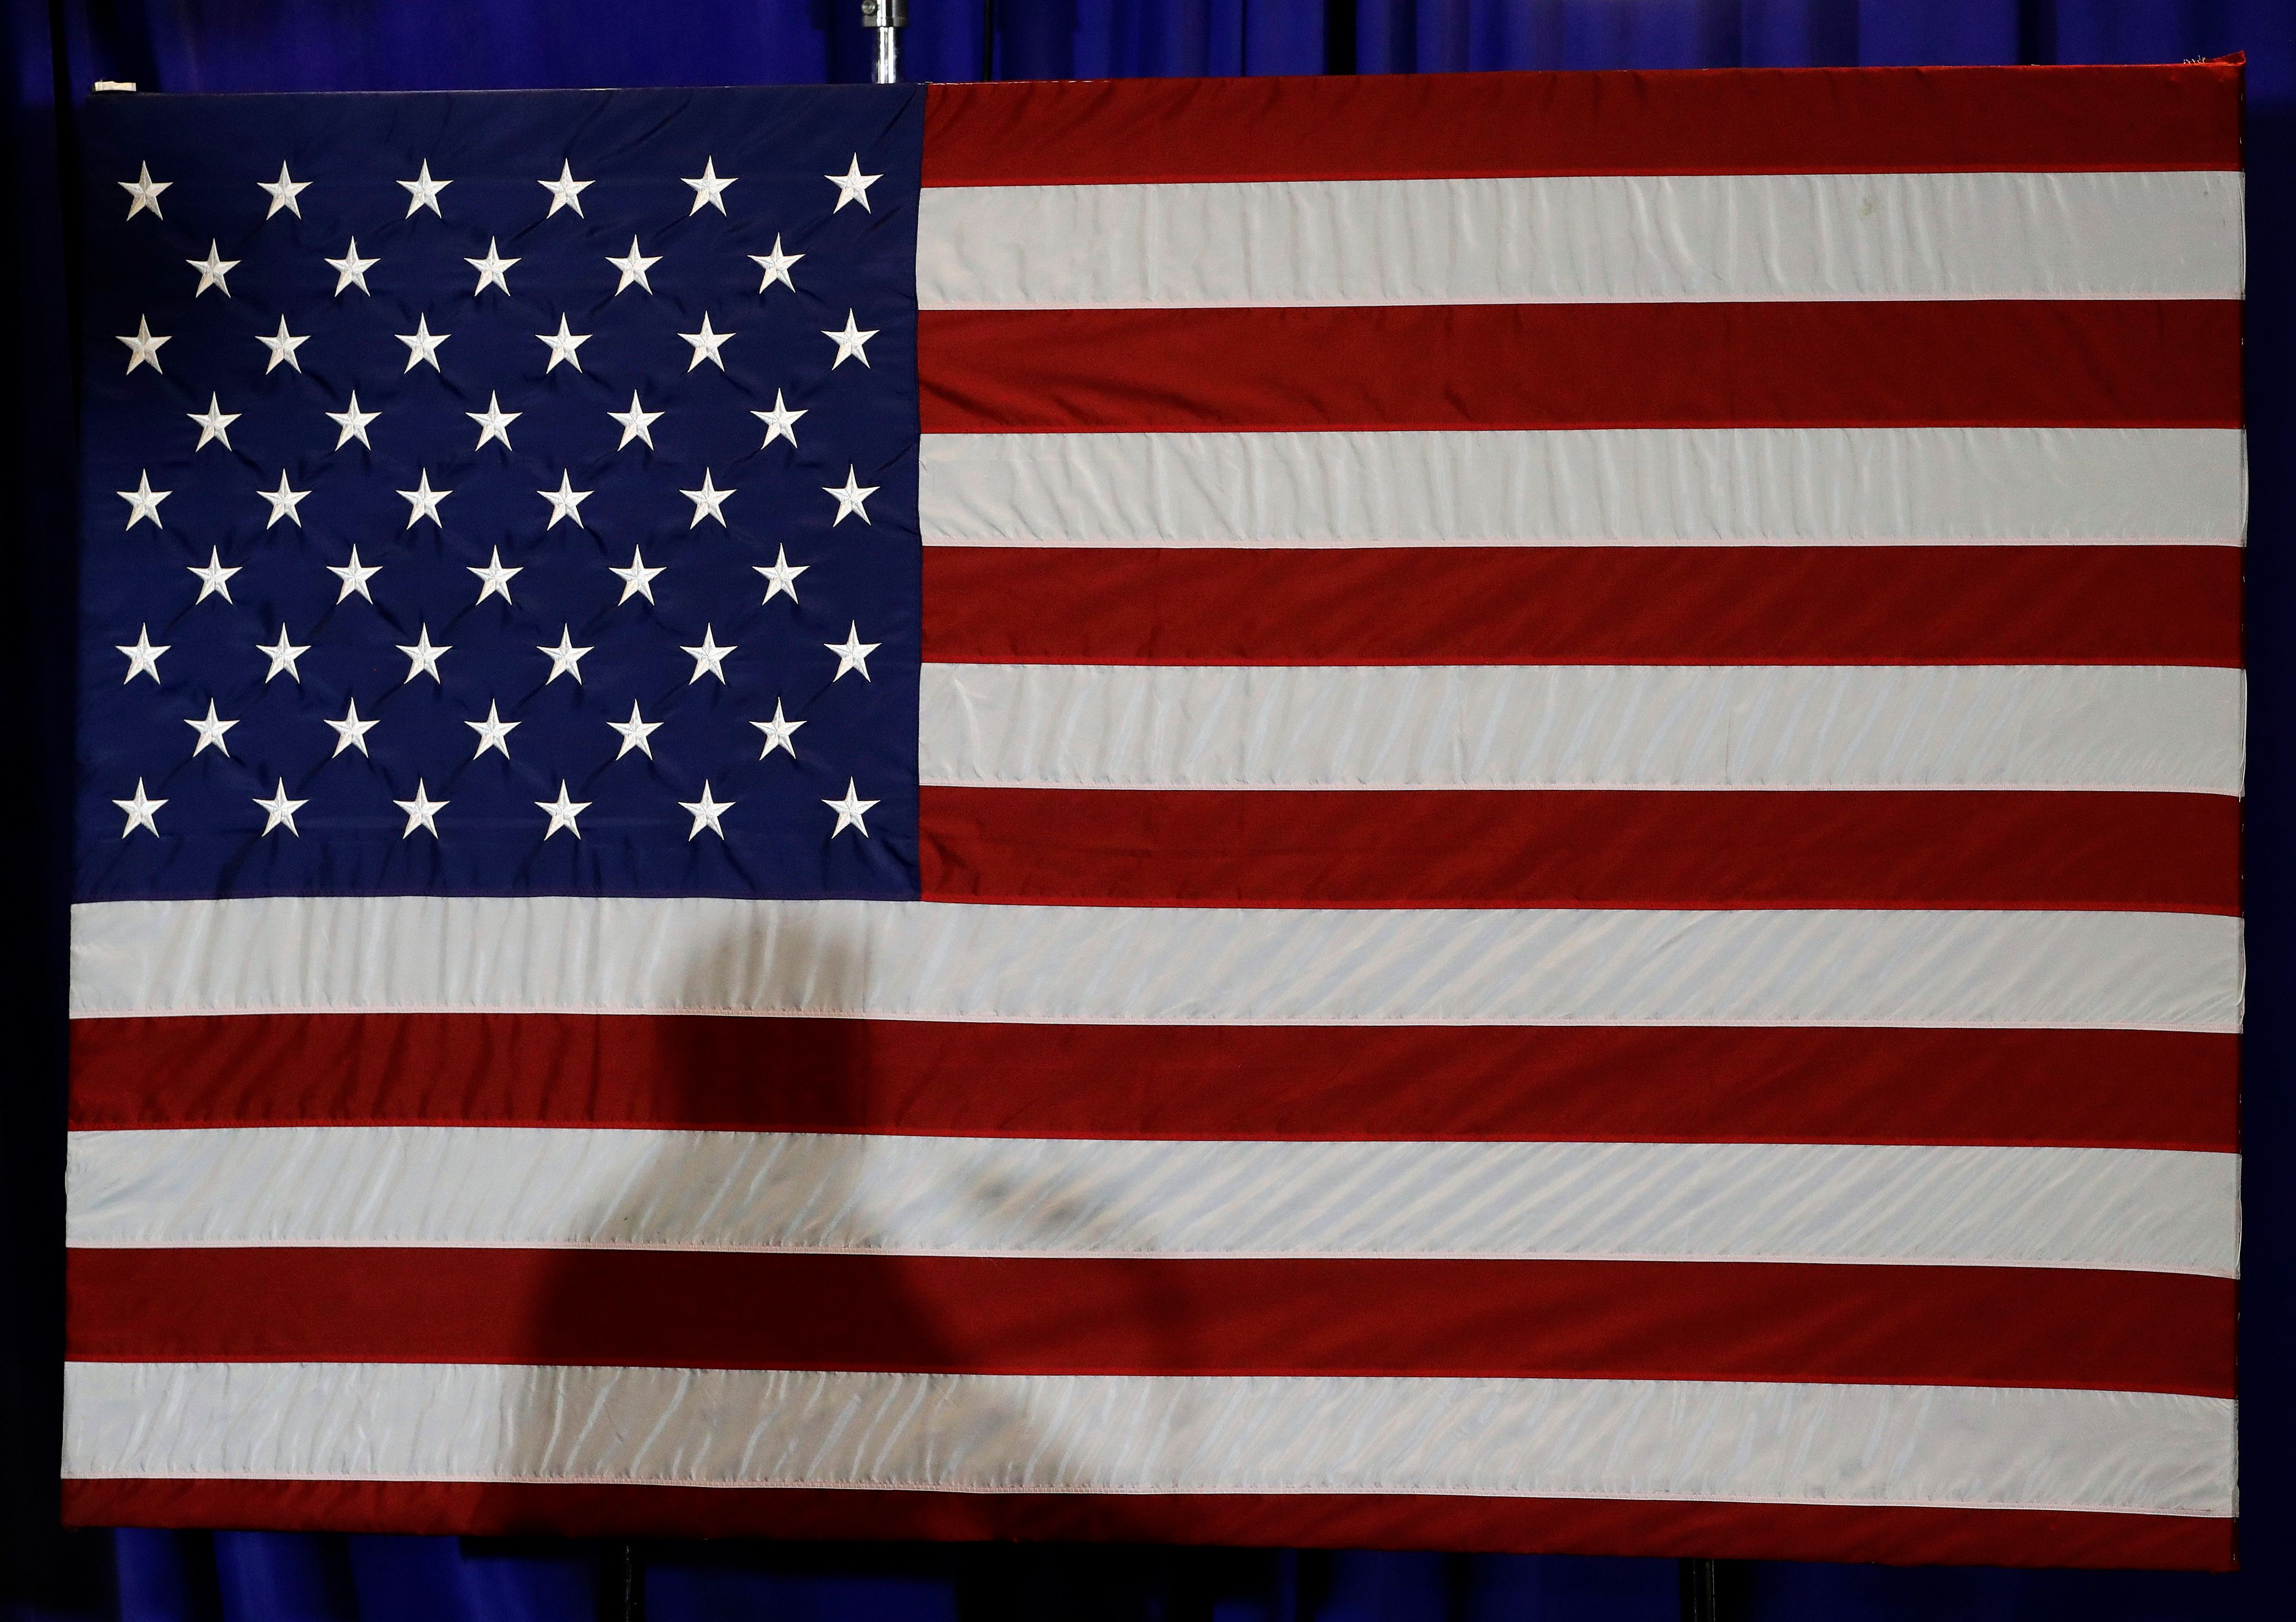 President Donald Trump's shadow is shown on an American flag as he speaks before signing an executive order at the CPCC Harris Conference Center in Charlotte, N.C., Friday, Aug. 31, 2018. (AP Photo/Chuck Burton)